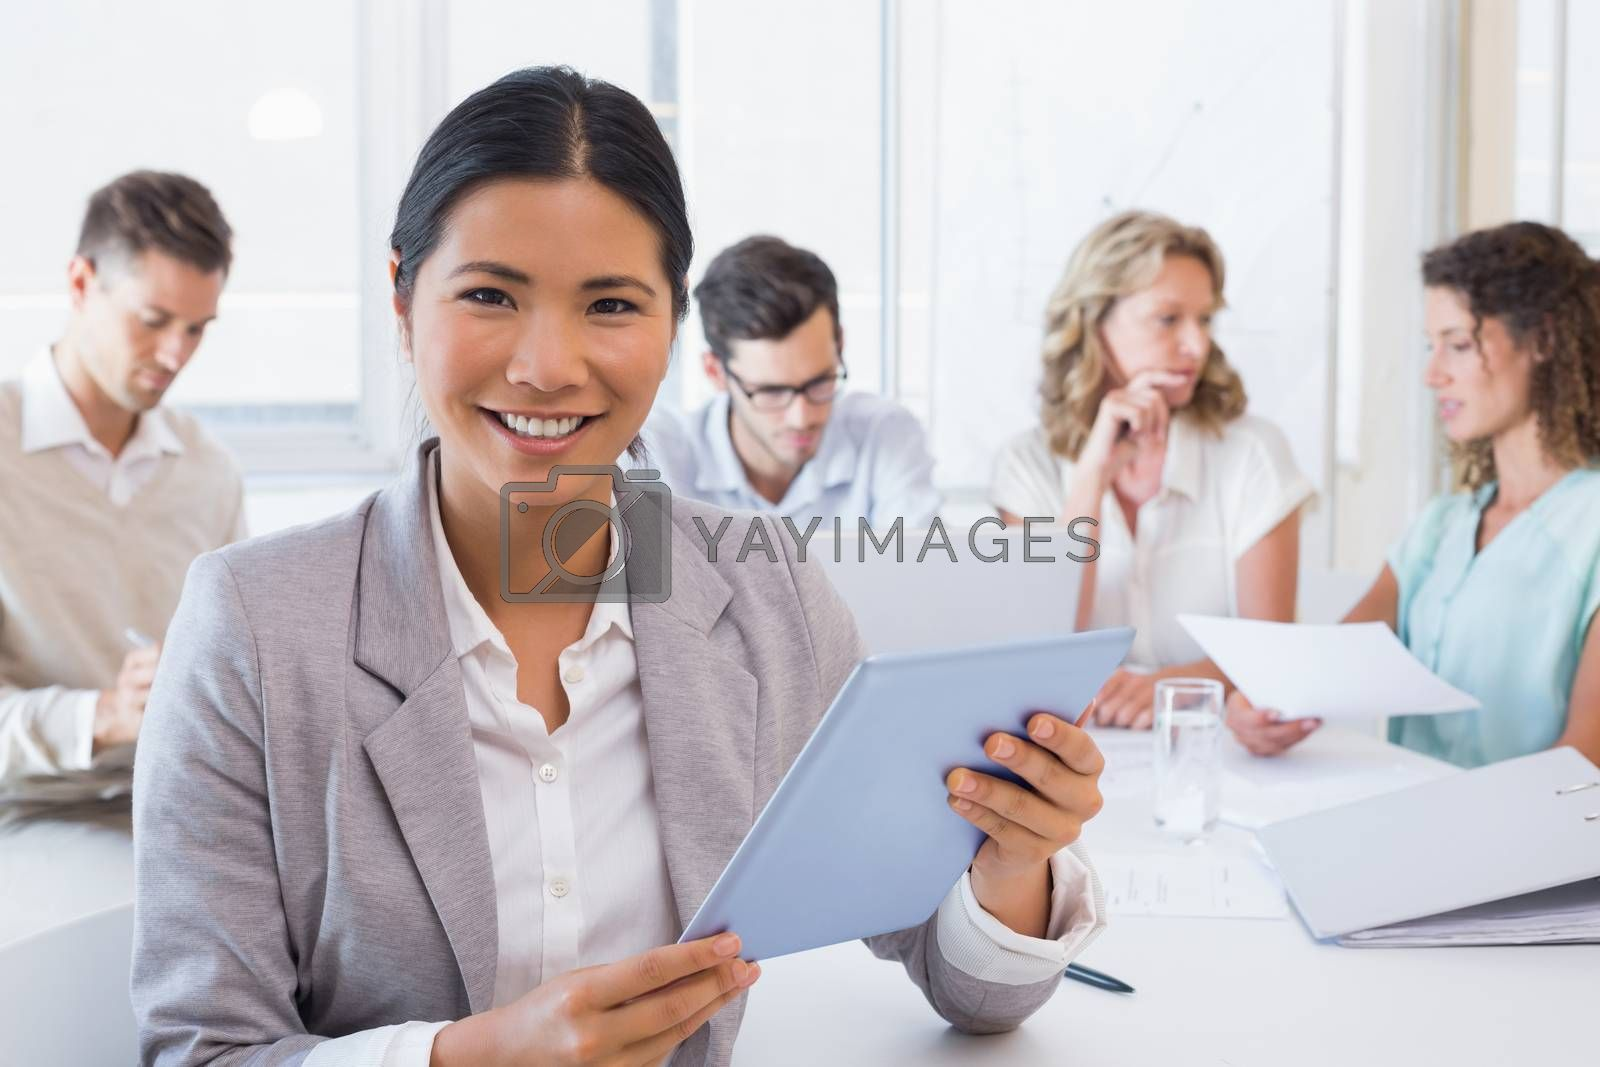 Royalty free image of Casual businesswoman using her tablet during a meeting by Wavebreakmedia